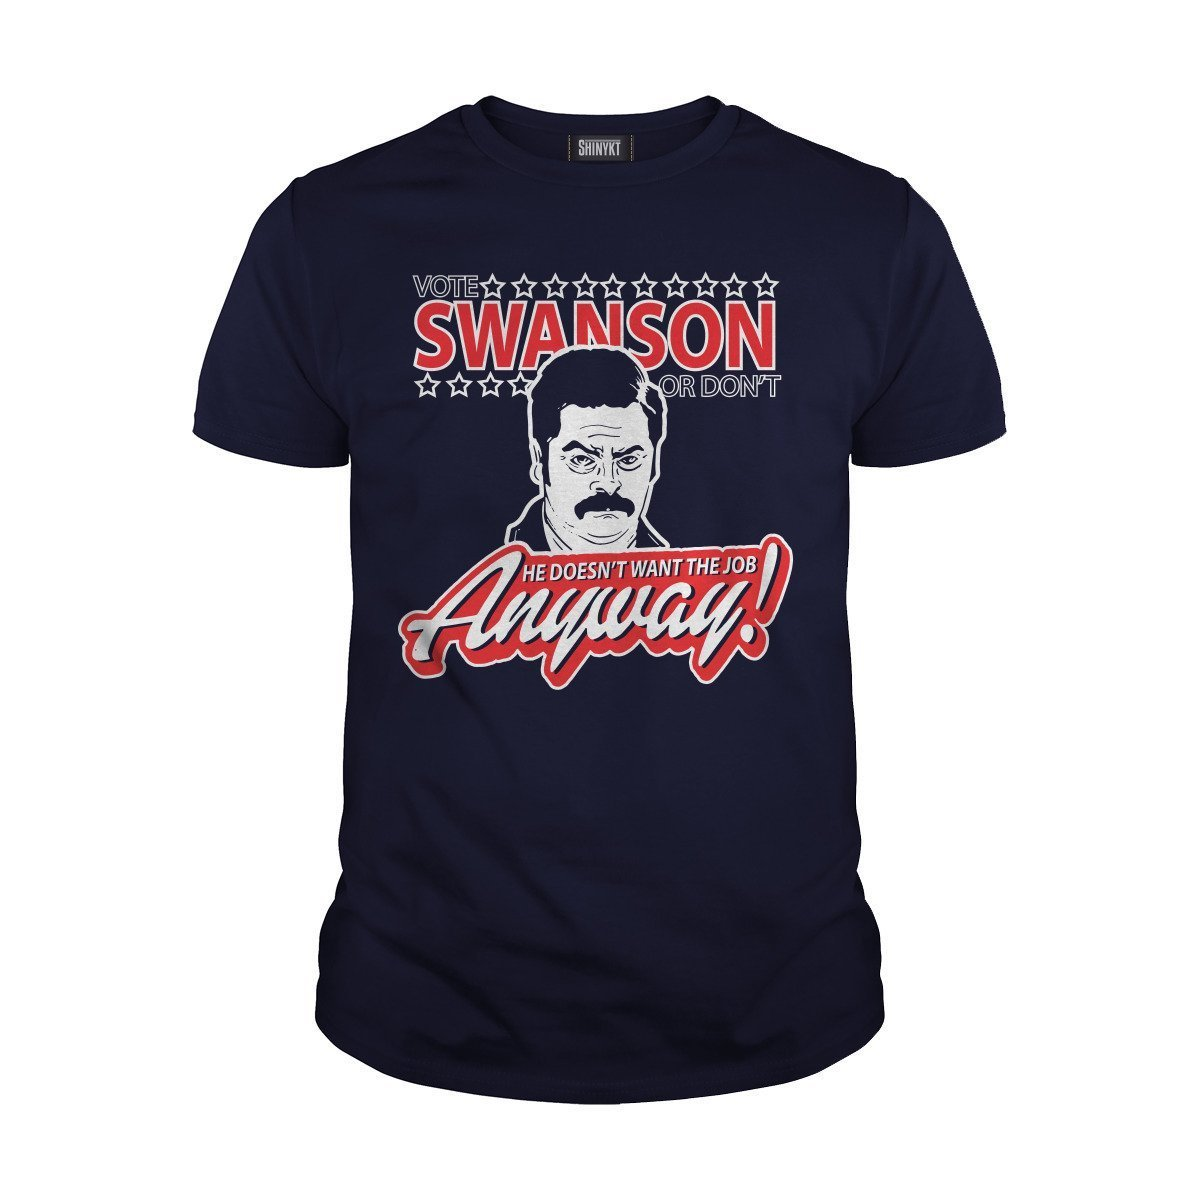 Vote Swanson Or Dont He Doesnt Want The Job Anyway Shirts